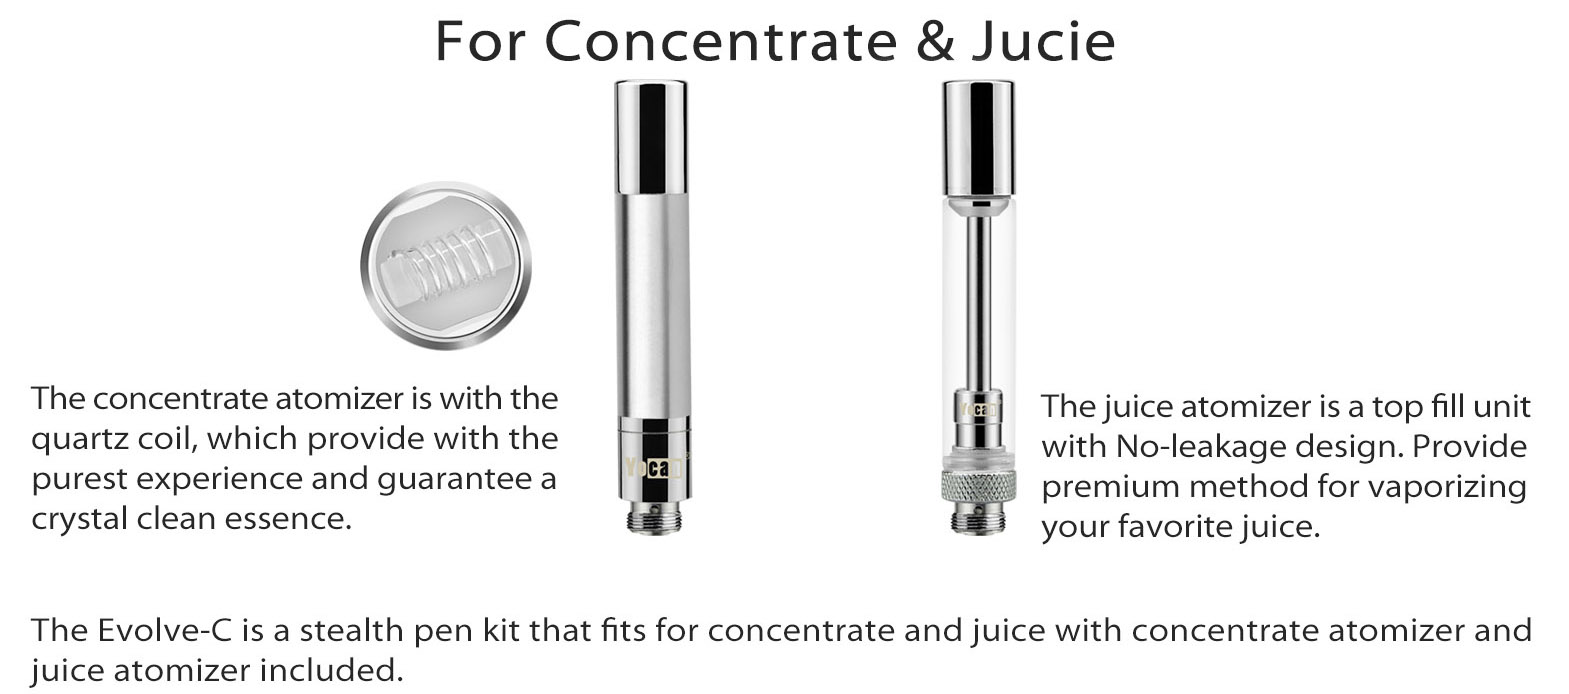 Yocan Evolve-C Kit Features 01